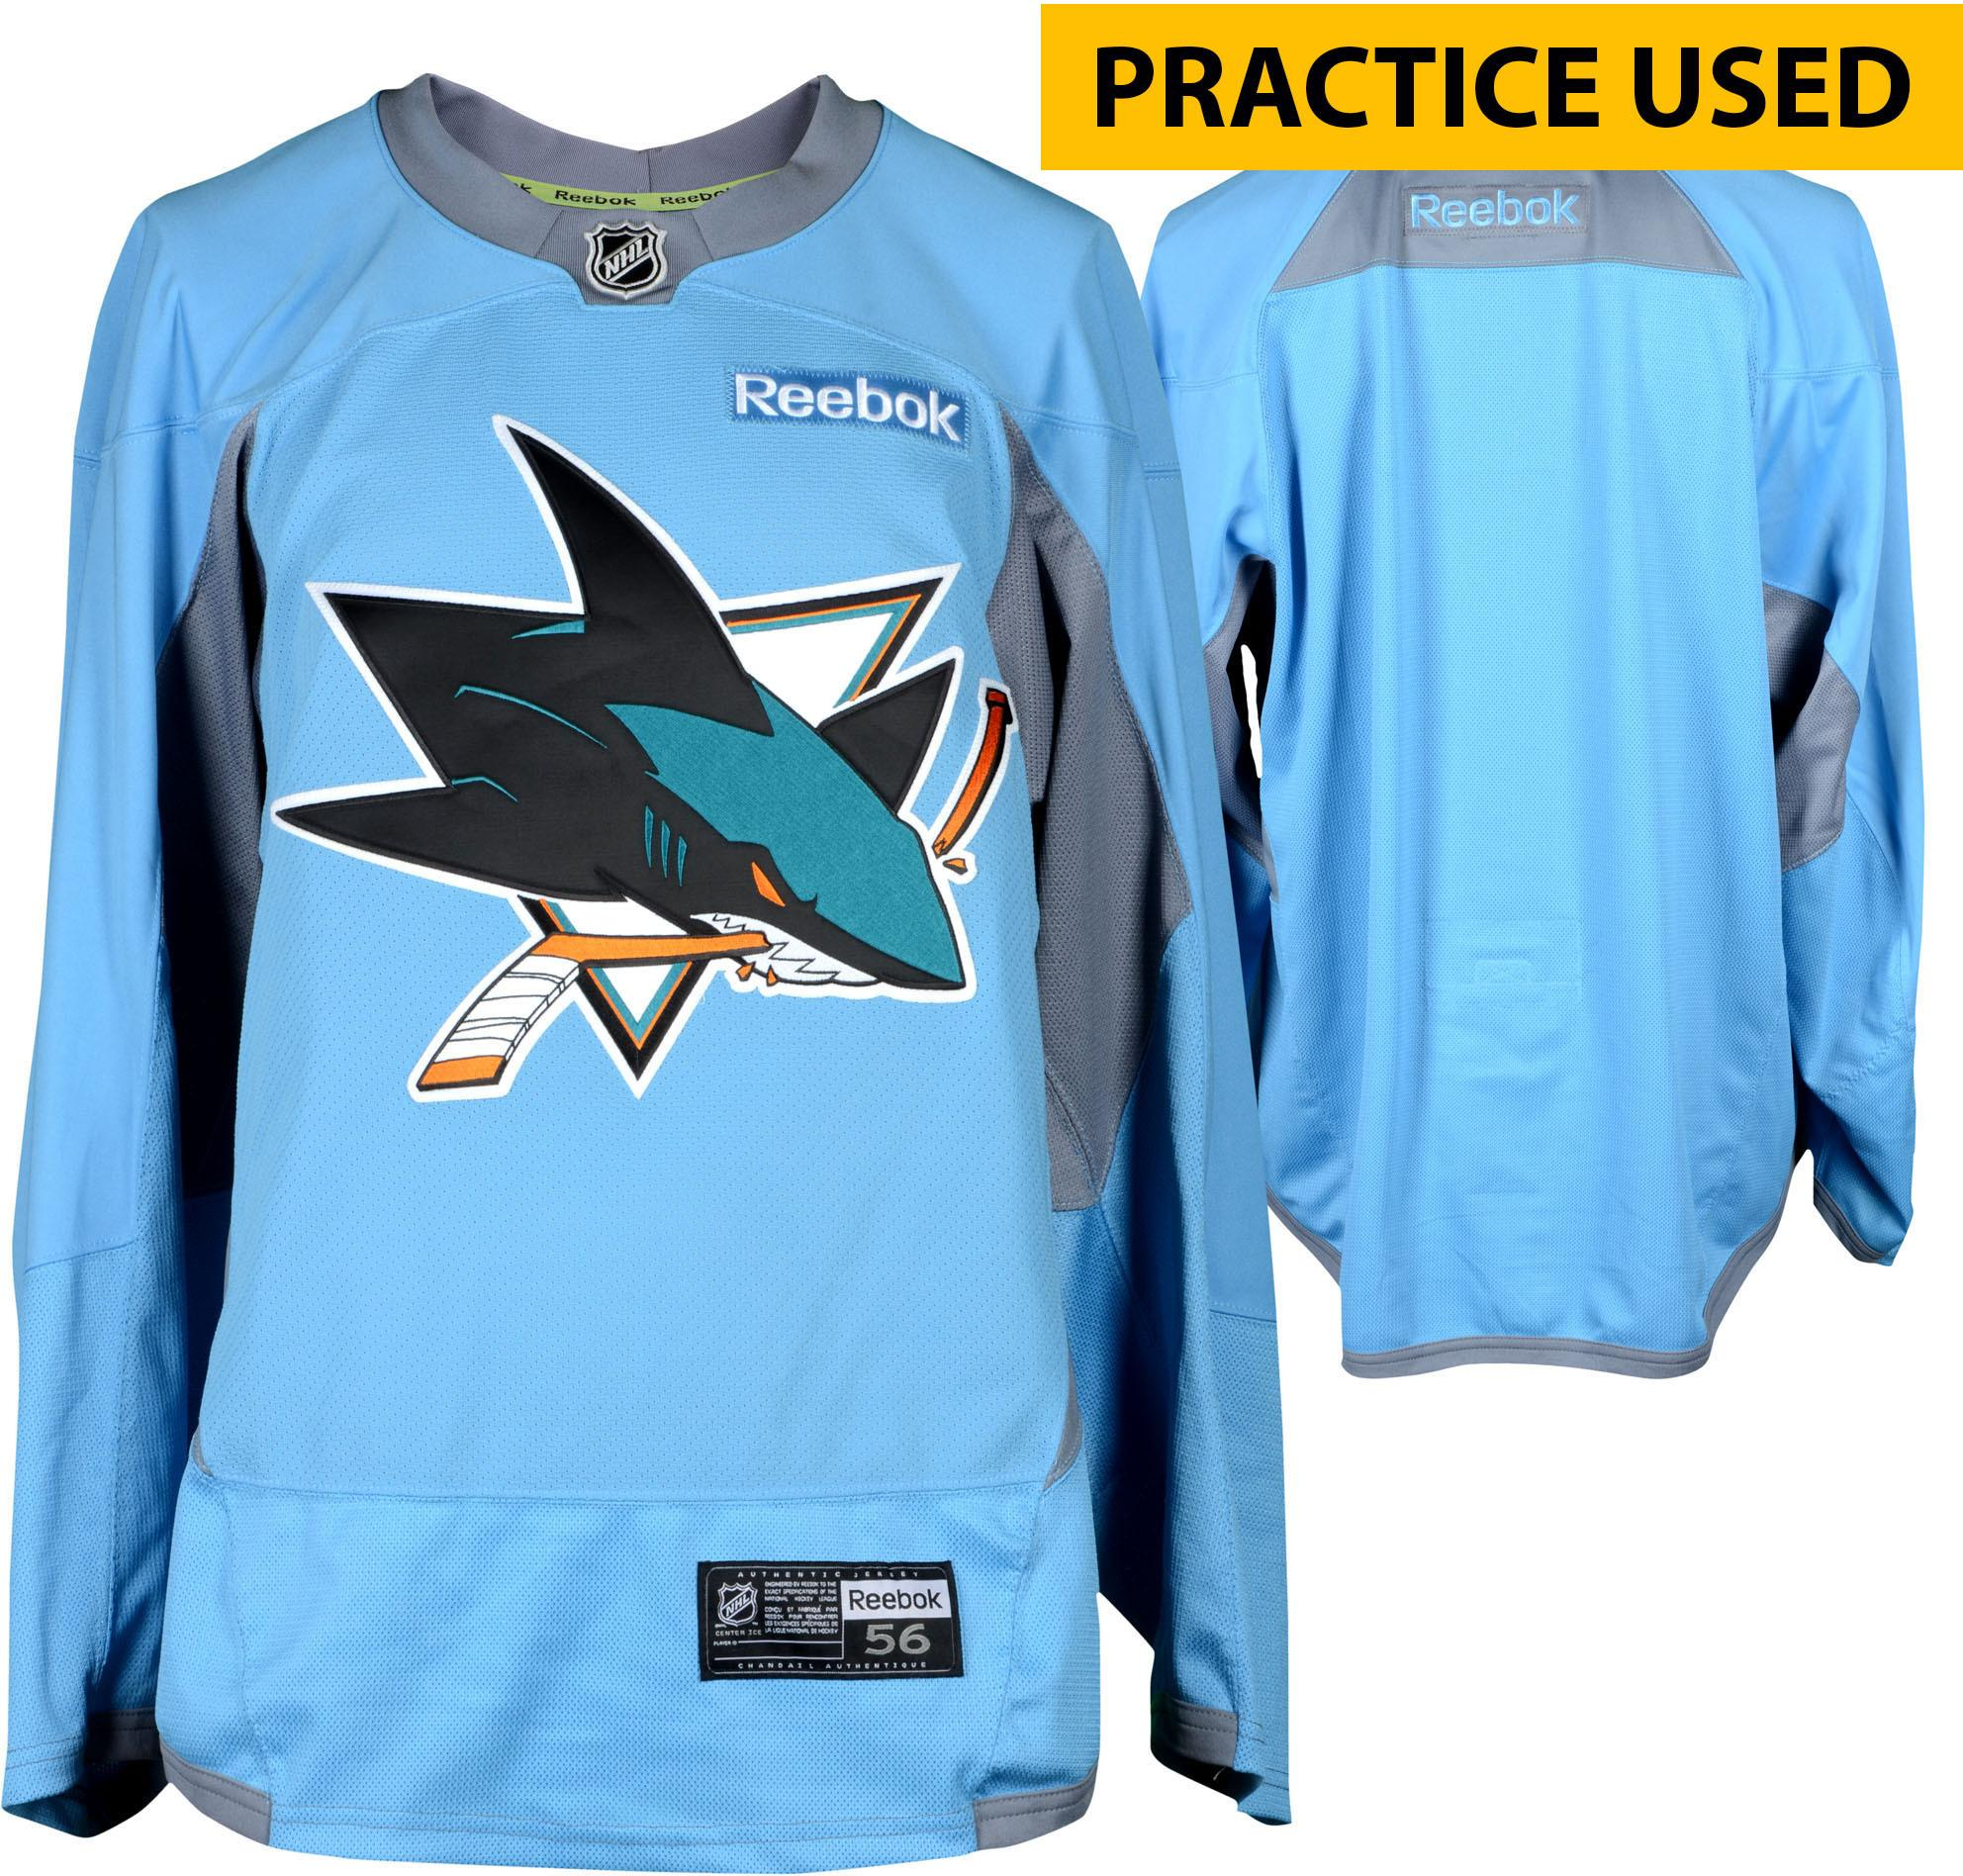 buy online 05ad0 51528 San Jose Sharks Practice-Used Sky Blue Reebok Jersey - Size 58 - Fanatics  Authentic Certified · The World Table Hockey Association, Inc.